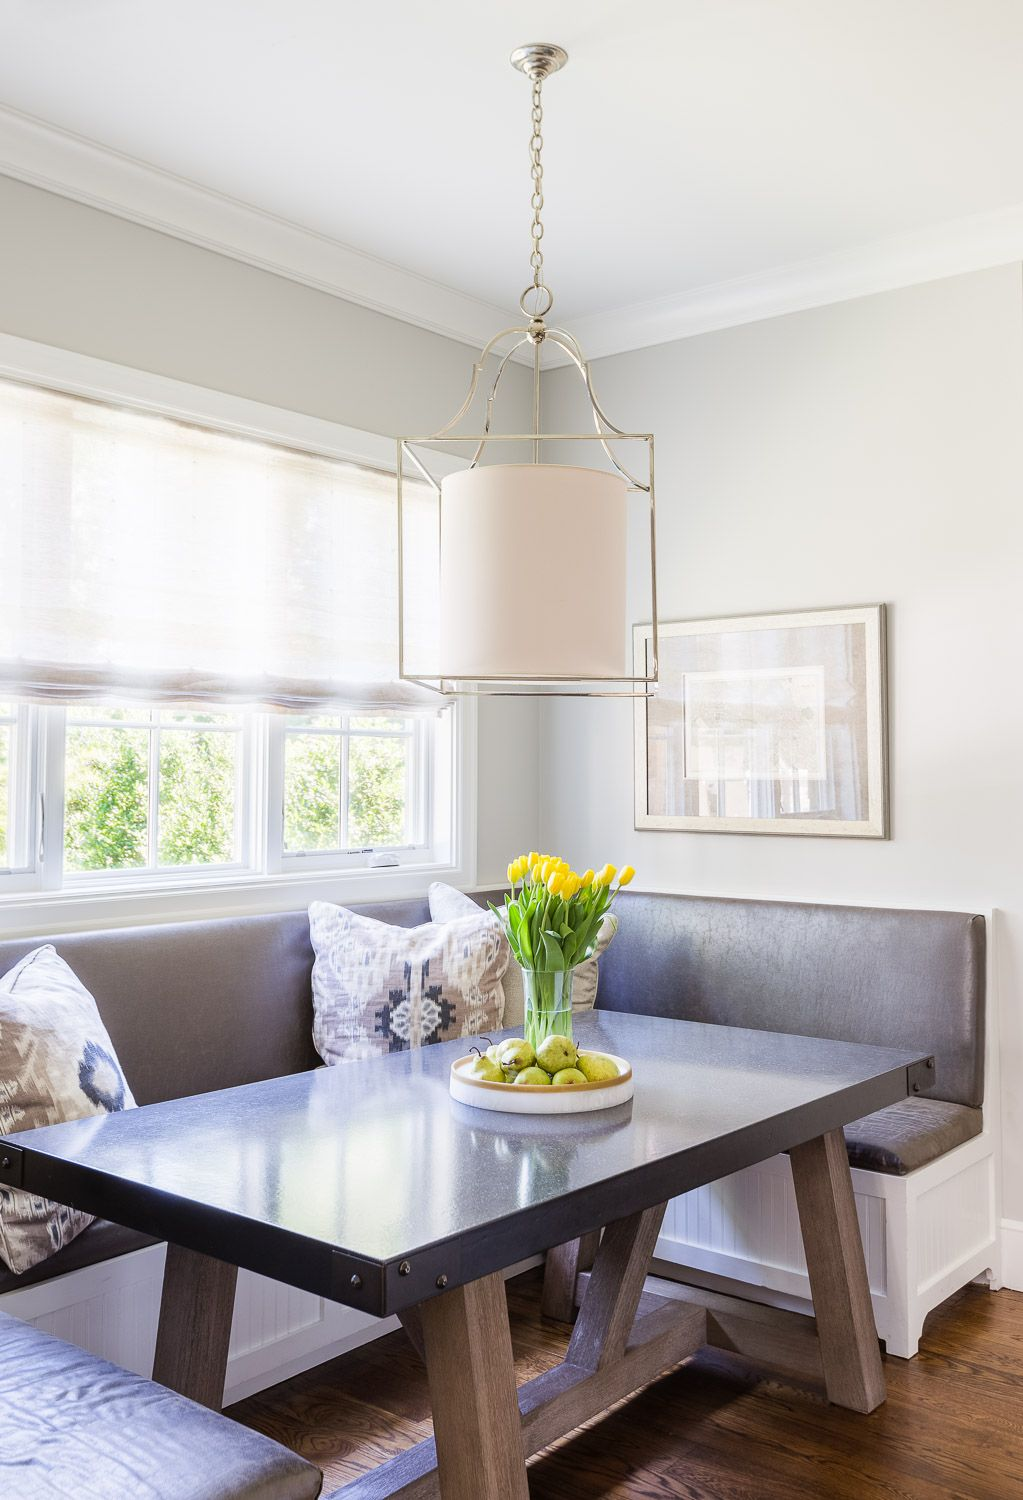 HOUSE TOUR: A Breezy Home That Makes You Forget Winter Is Coming